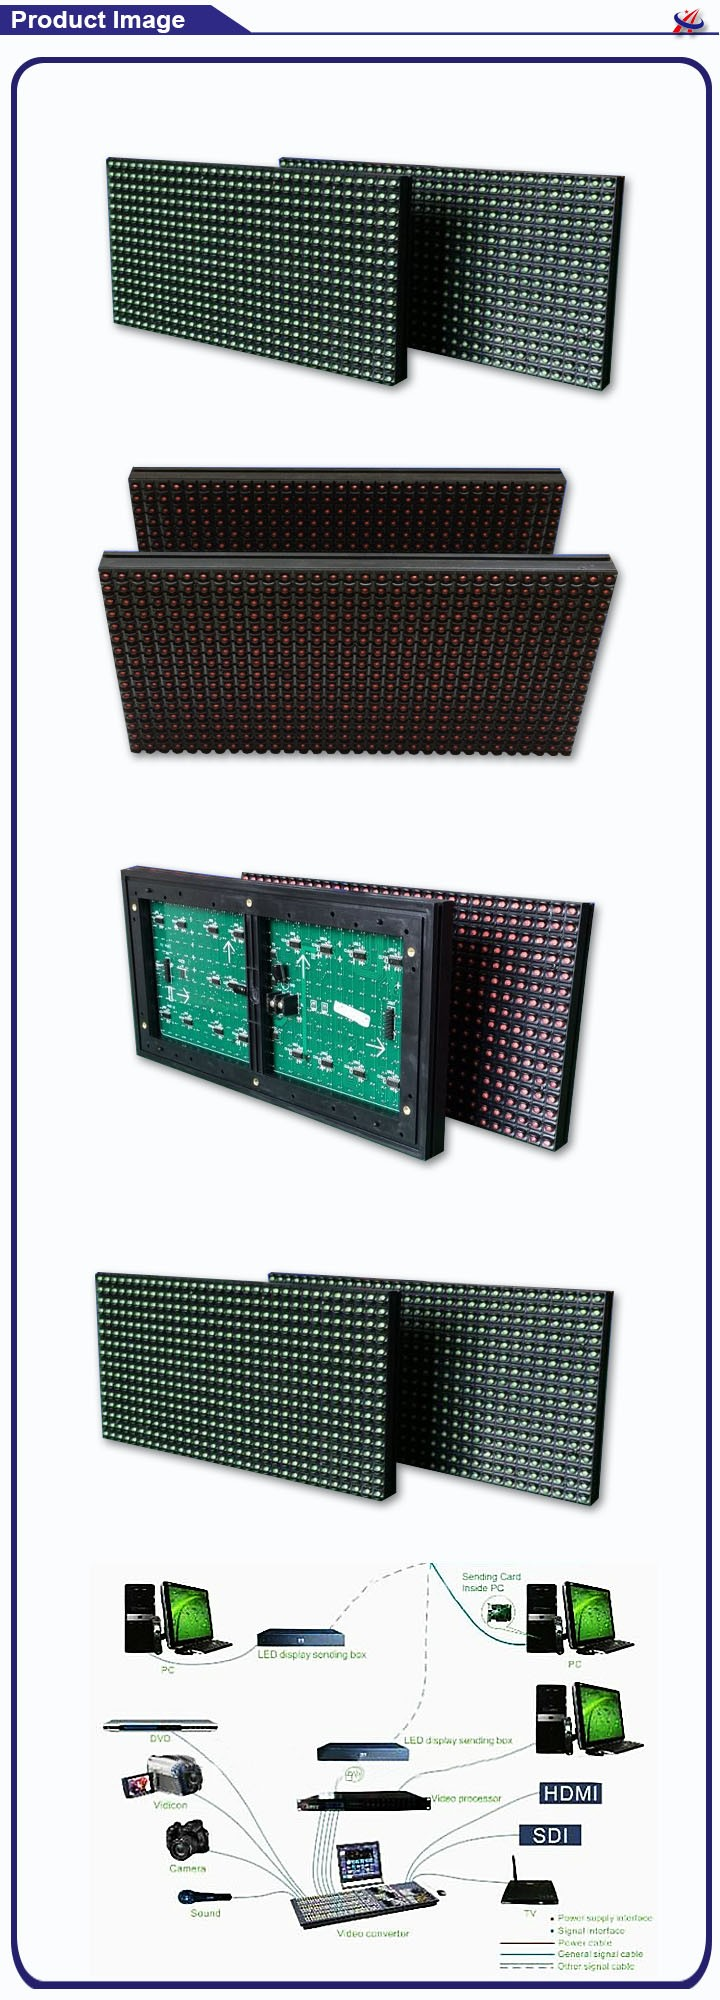 p10(1r)-v706 led display module,bright p10(1r)-v706 led display module,hot p10(1r)-v706 led display module